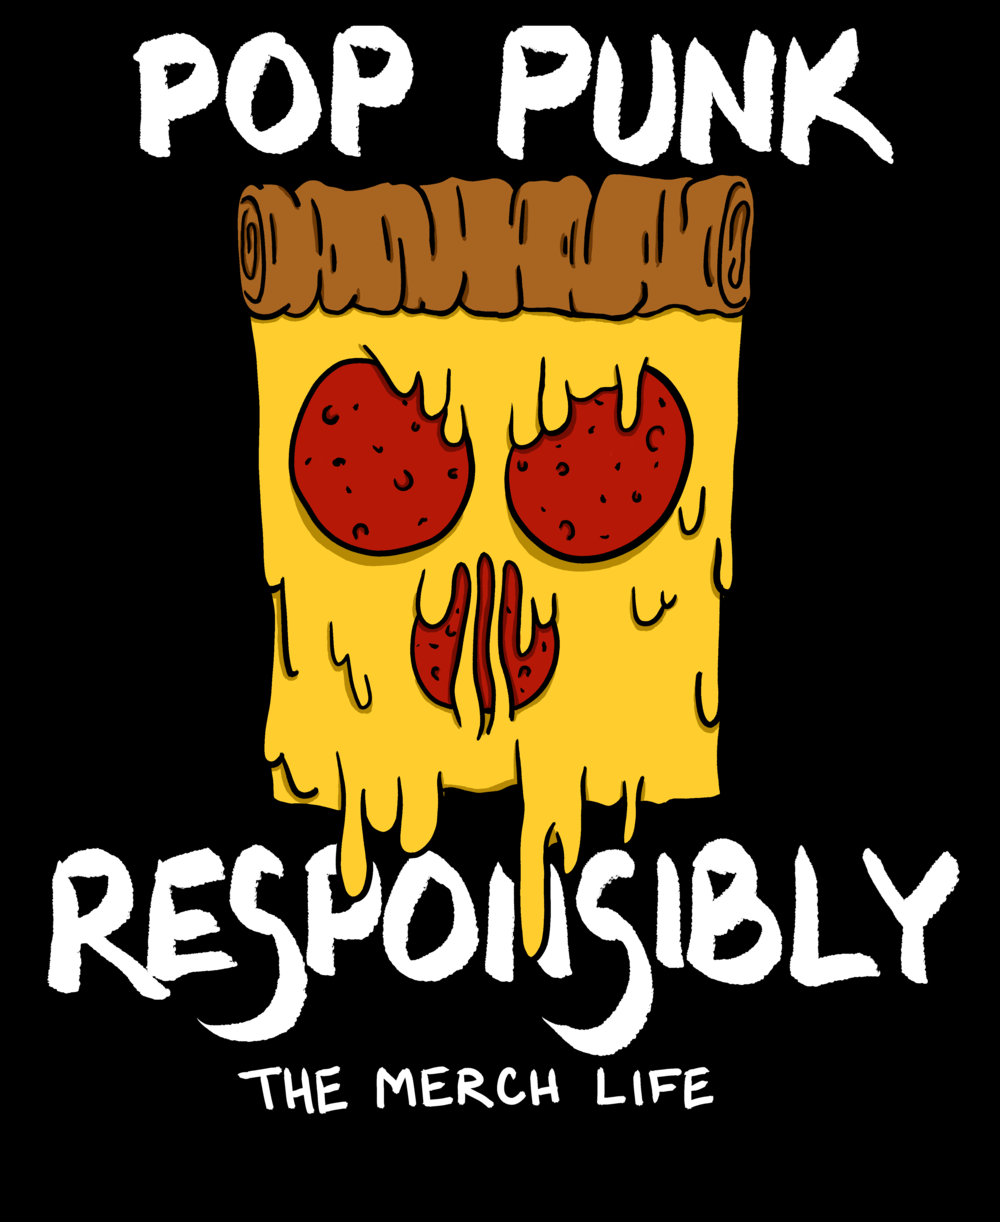 Graphic Design for The Merch Life